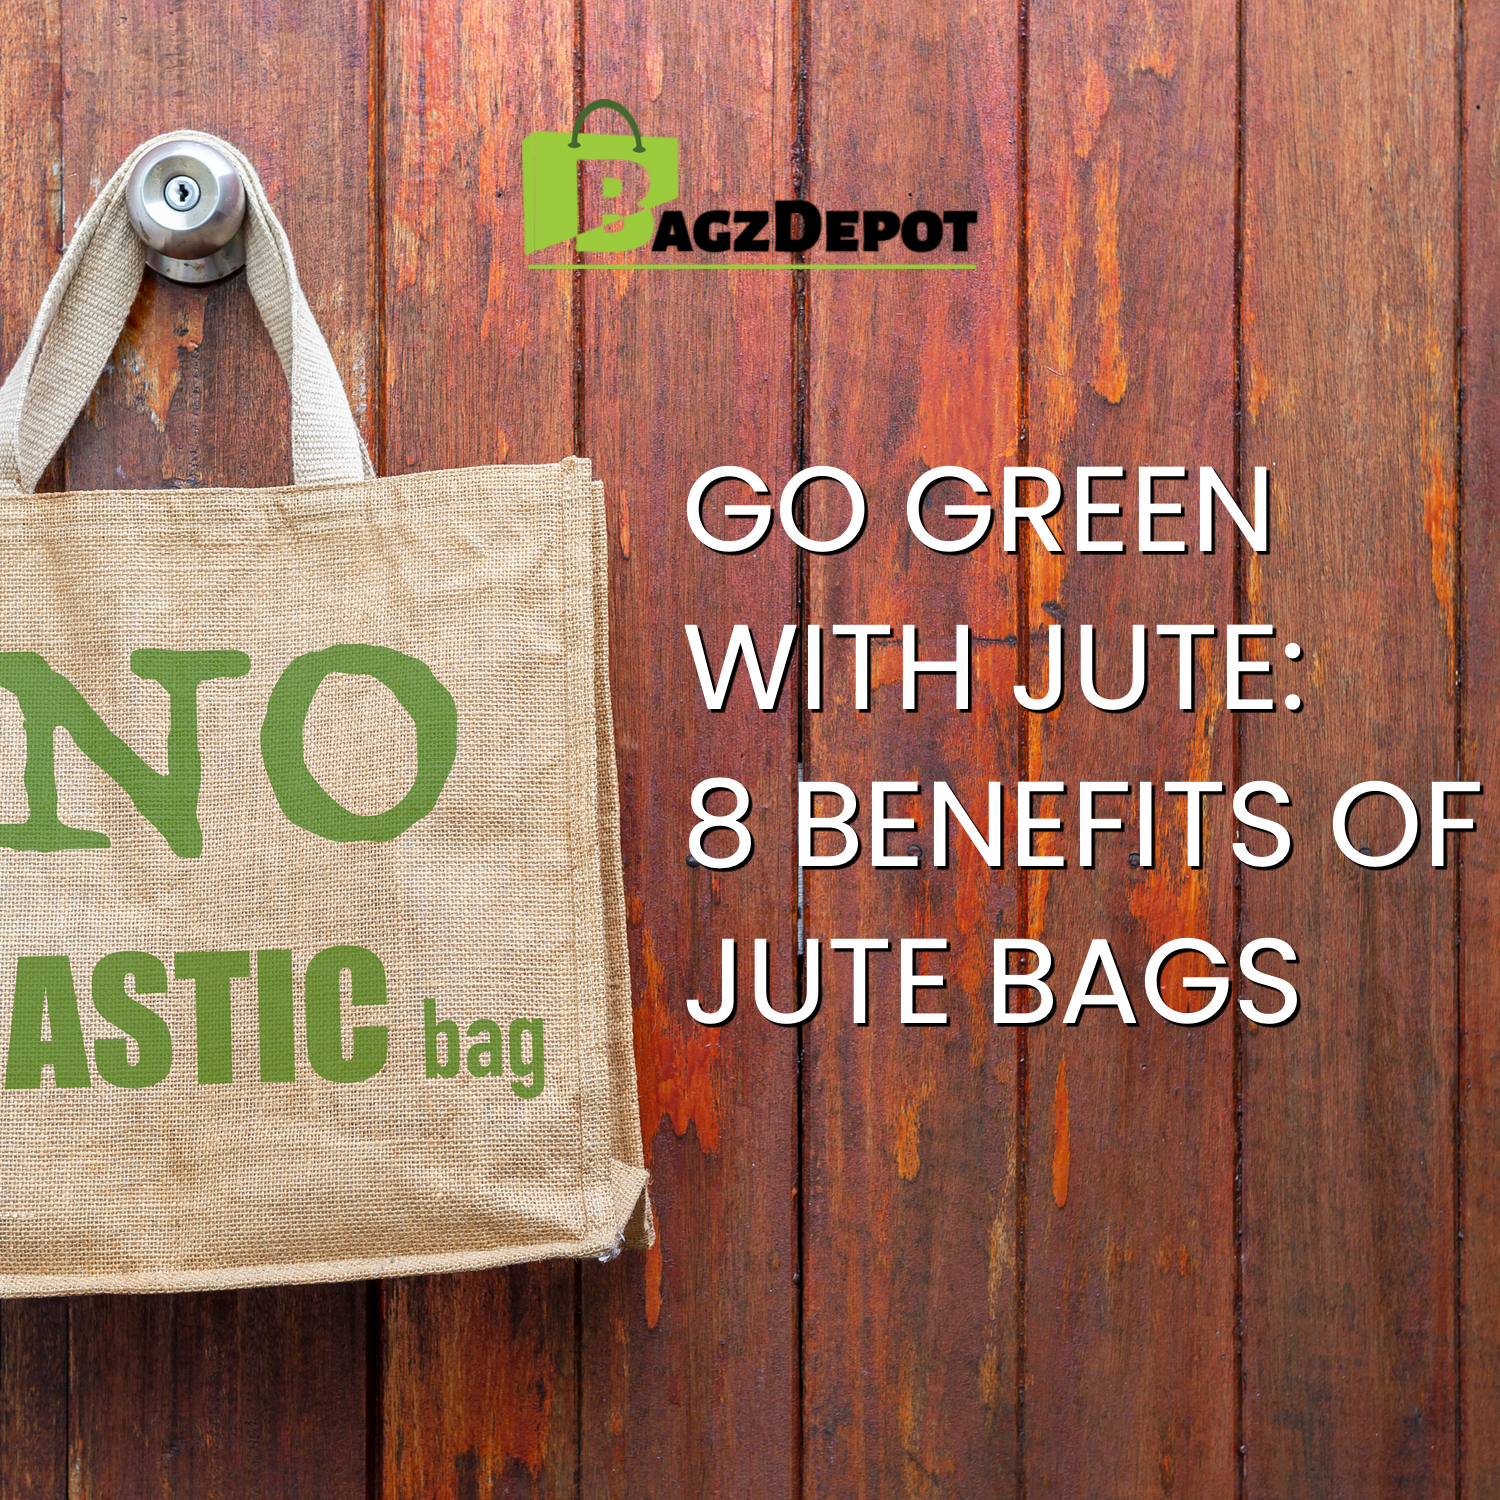 Go Green With Jute: 8 Benefits of Jute Bags